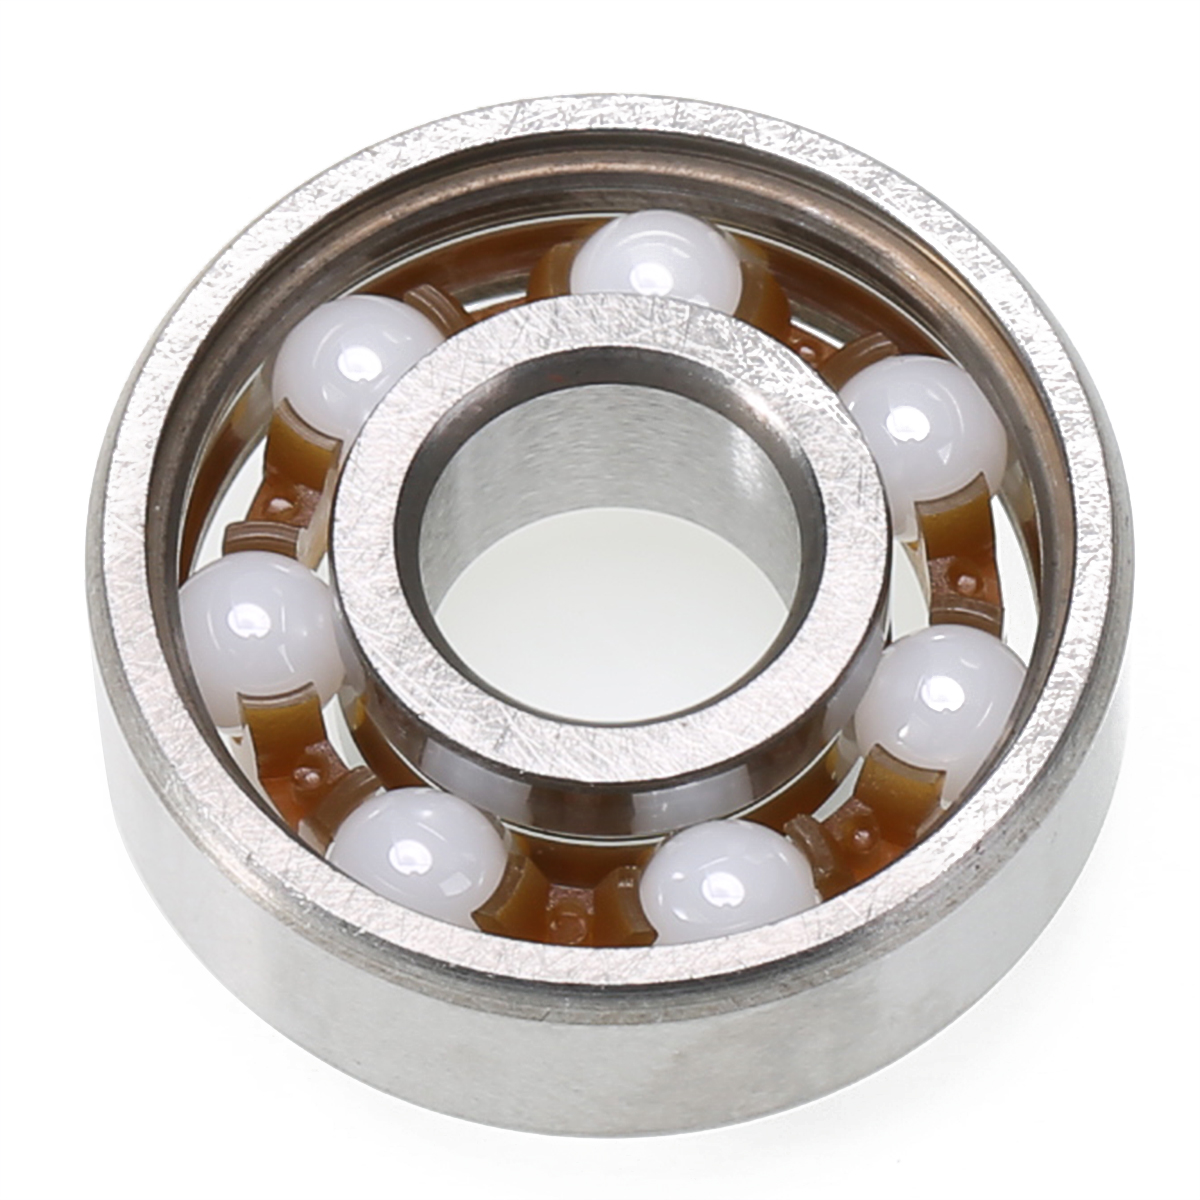 High Quality New Mayitr 608 ZrO2 Ball Bearing Ceramic Speed Ball Bearings 8x22x7mm For Home Tools image